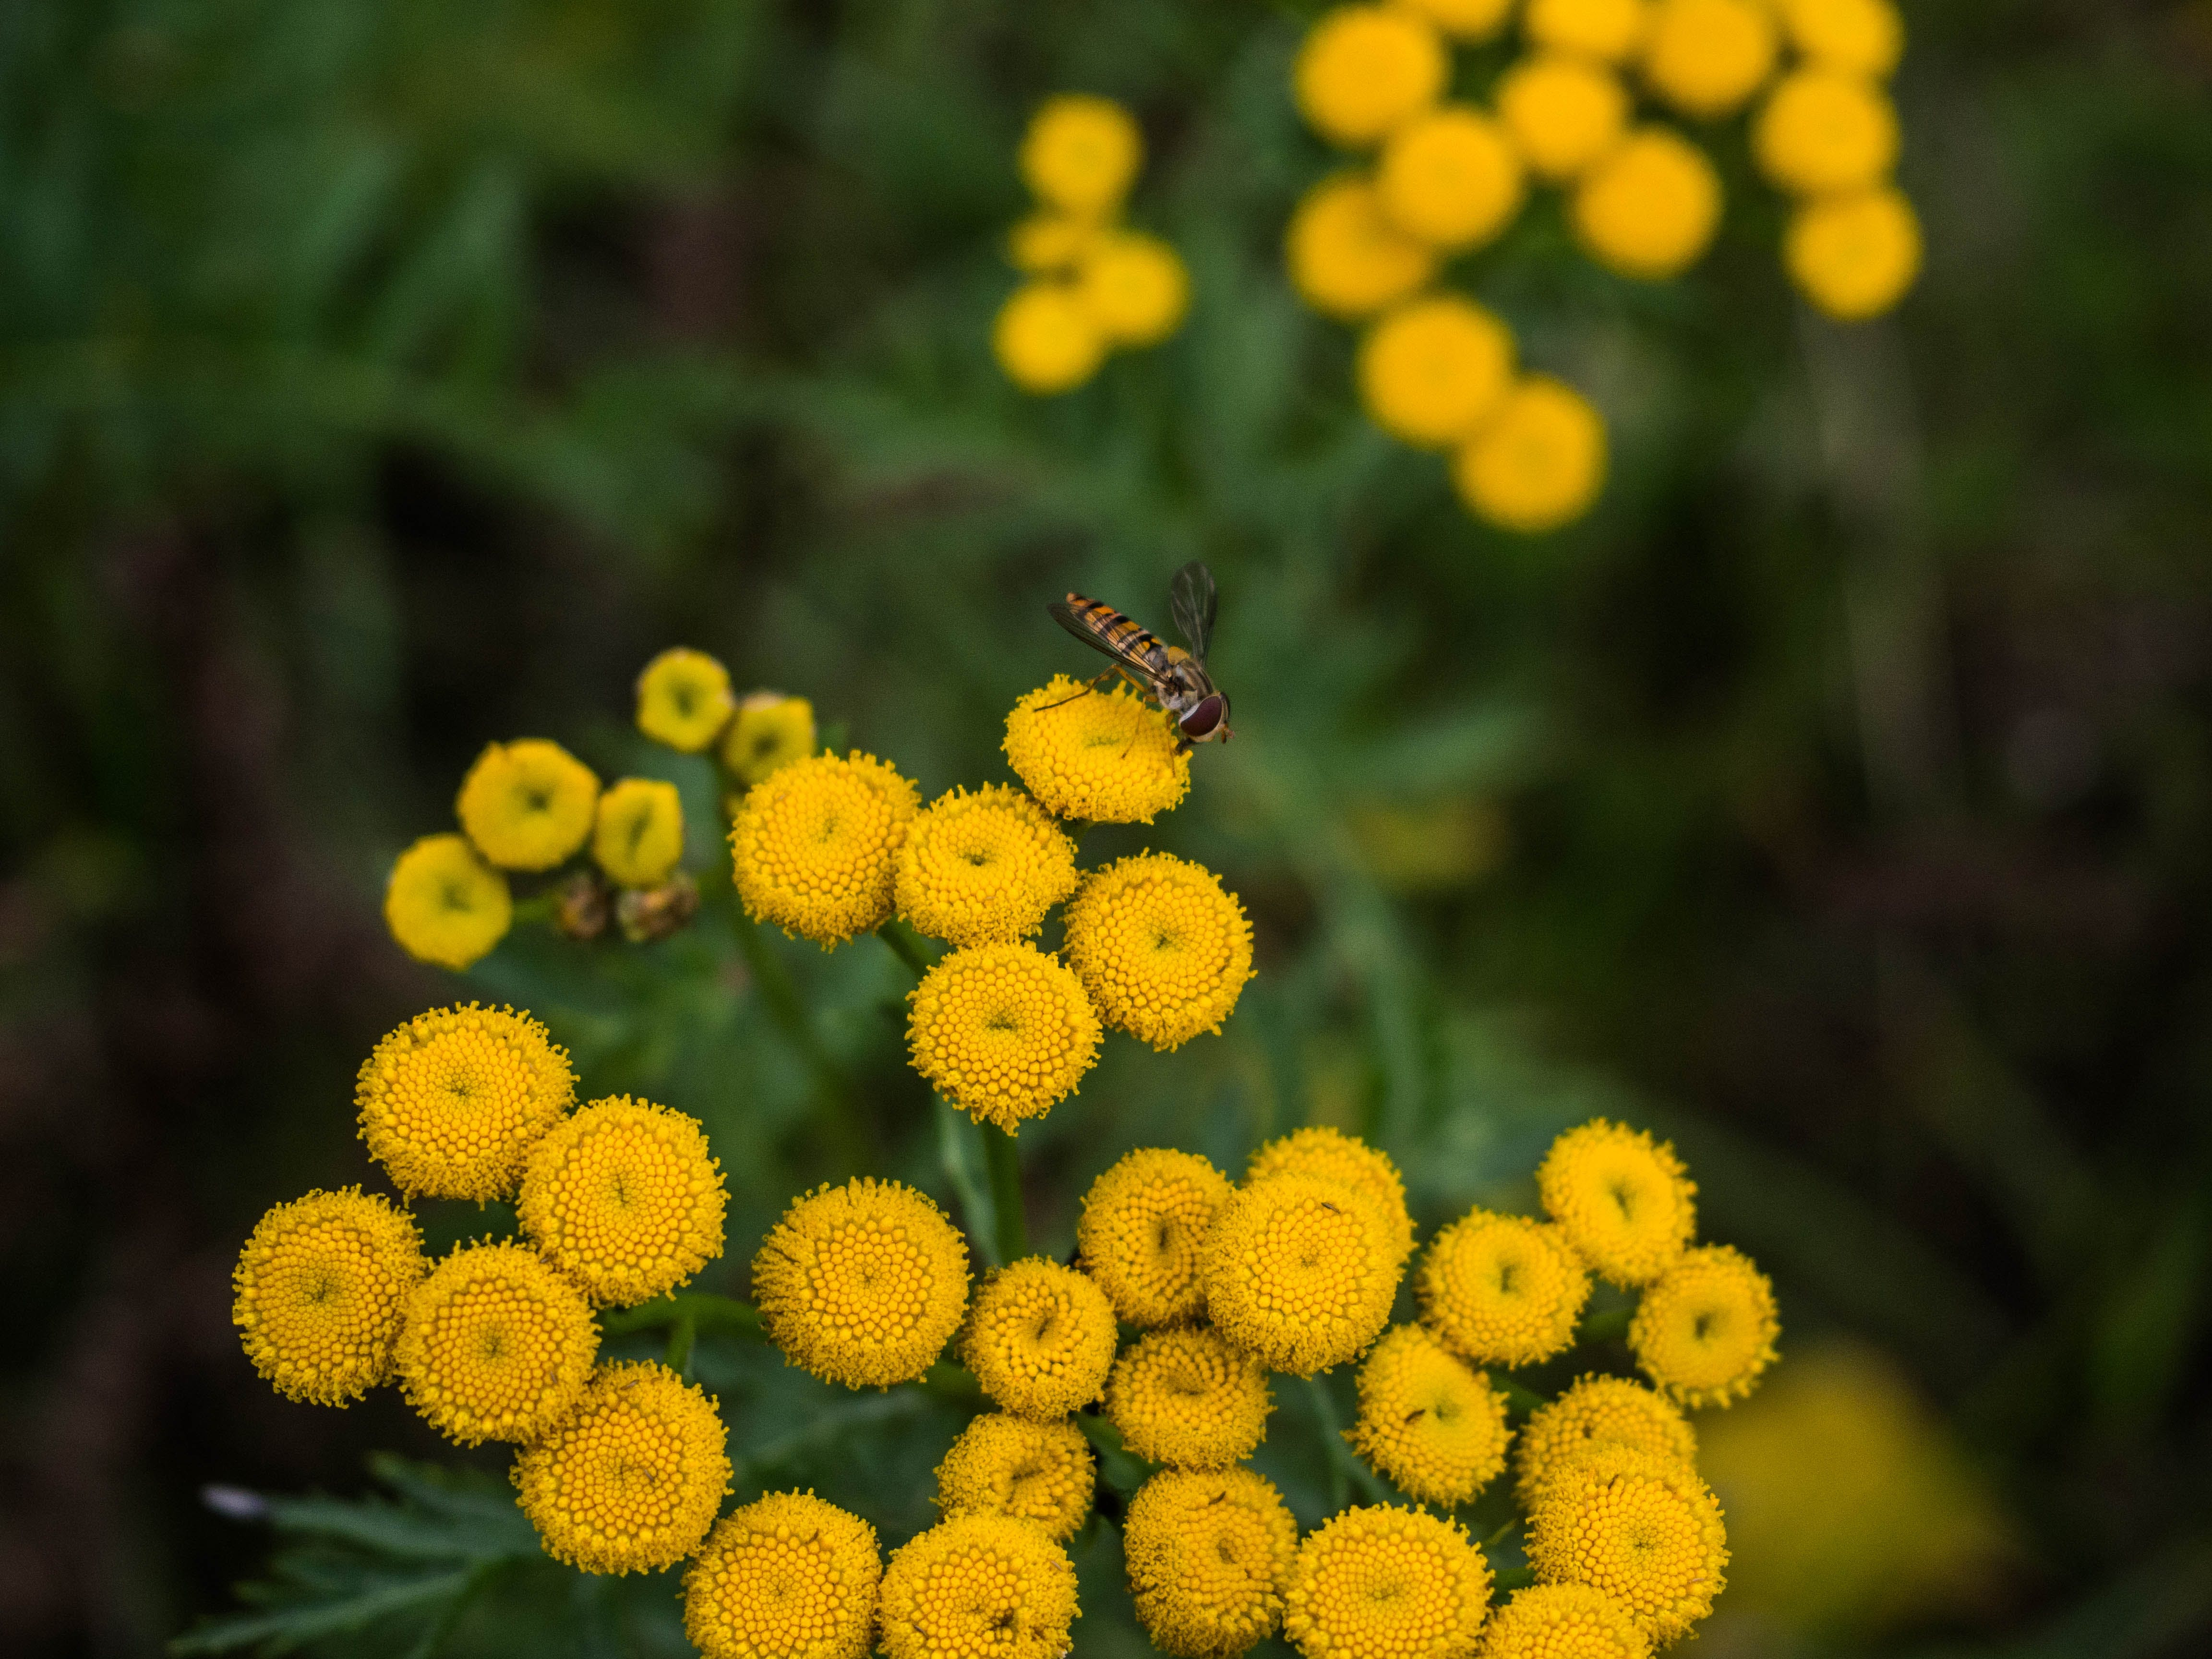 Selective Focus Photo of Hoverfly on Yellow Flower